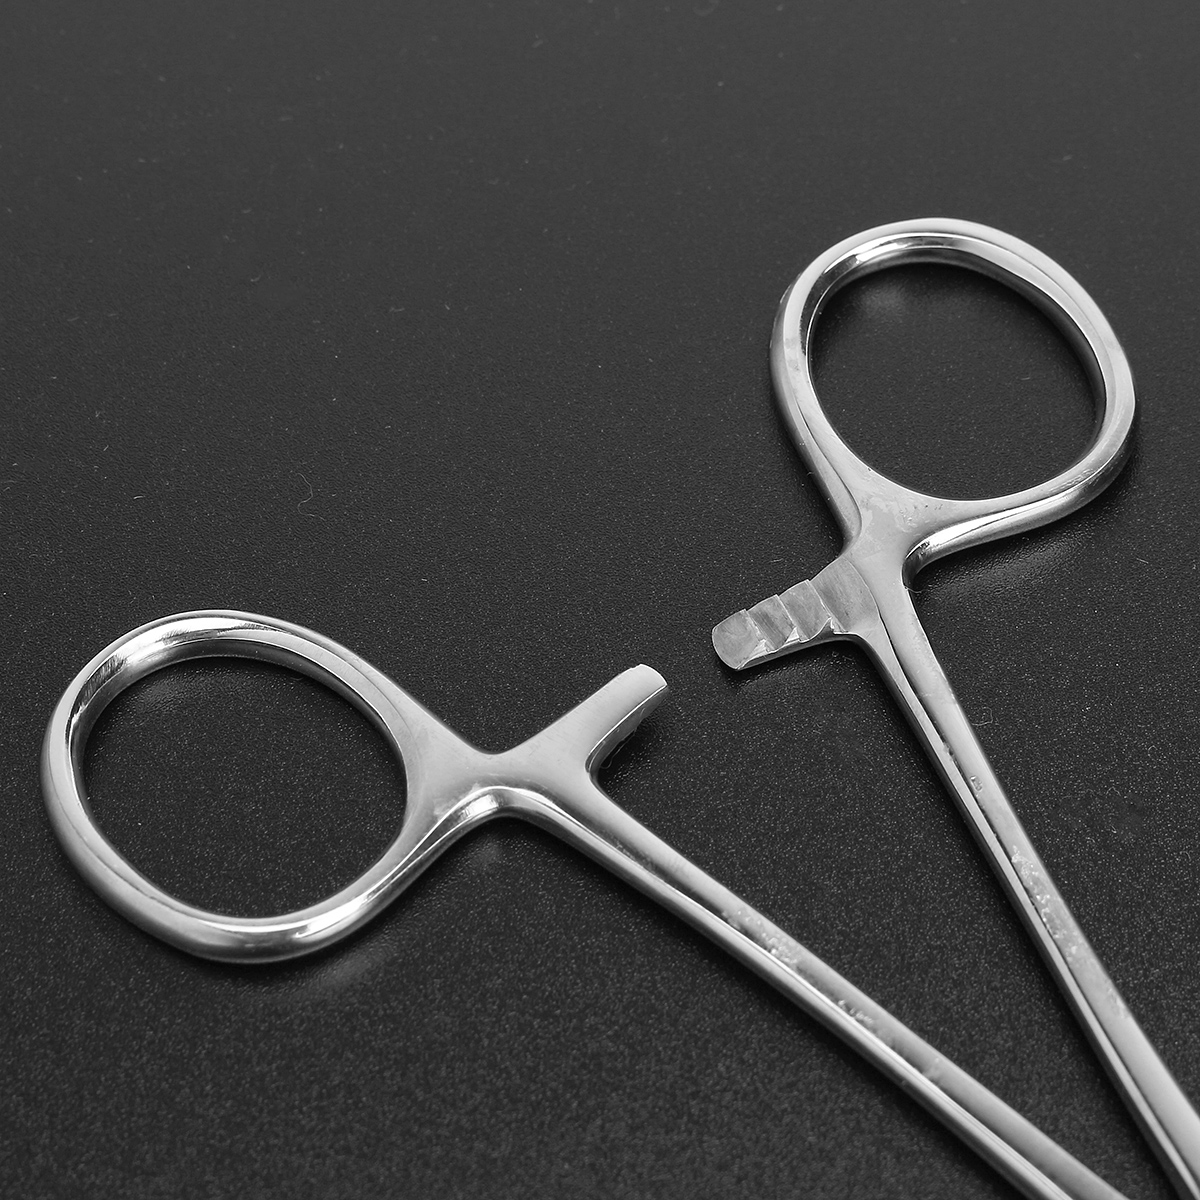 Puncture Dental Tools Perforating Forceps Positioning Kits